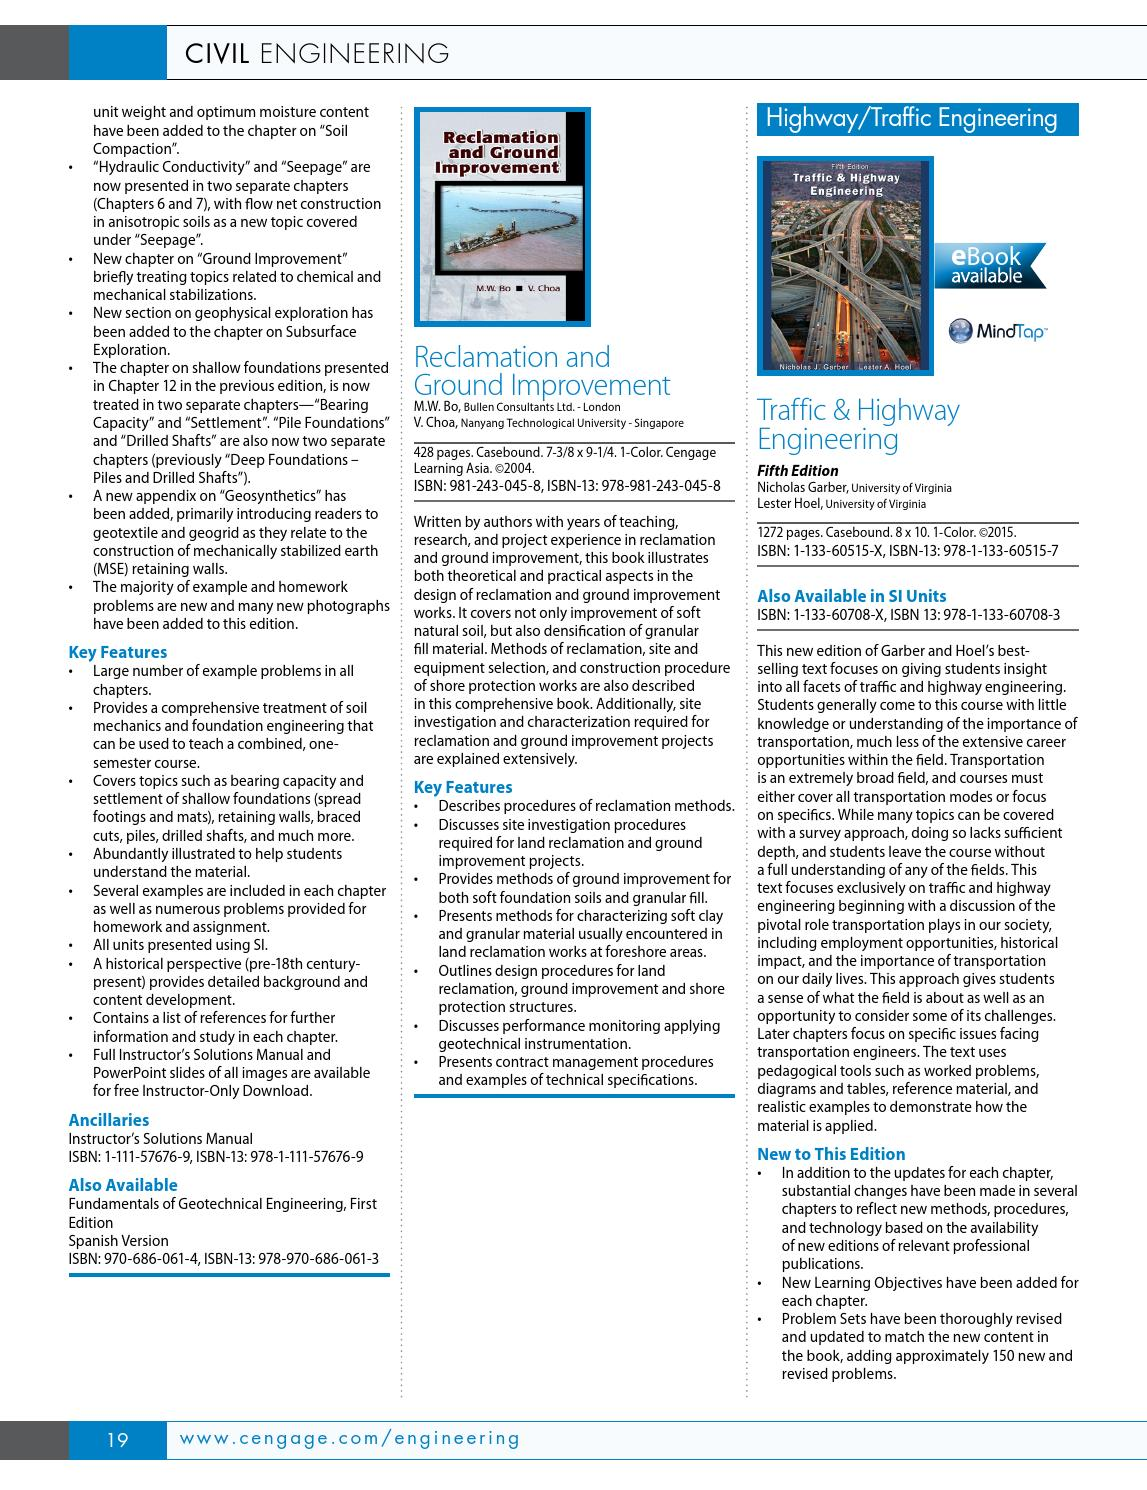 Cengage learning global engineering 2015 catalog by cengage learning cengage learning global engineering 2015 catalog by cengage learning global engineering issuu fandeluxe Gallery